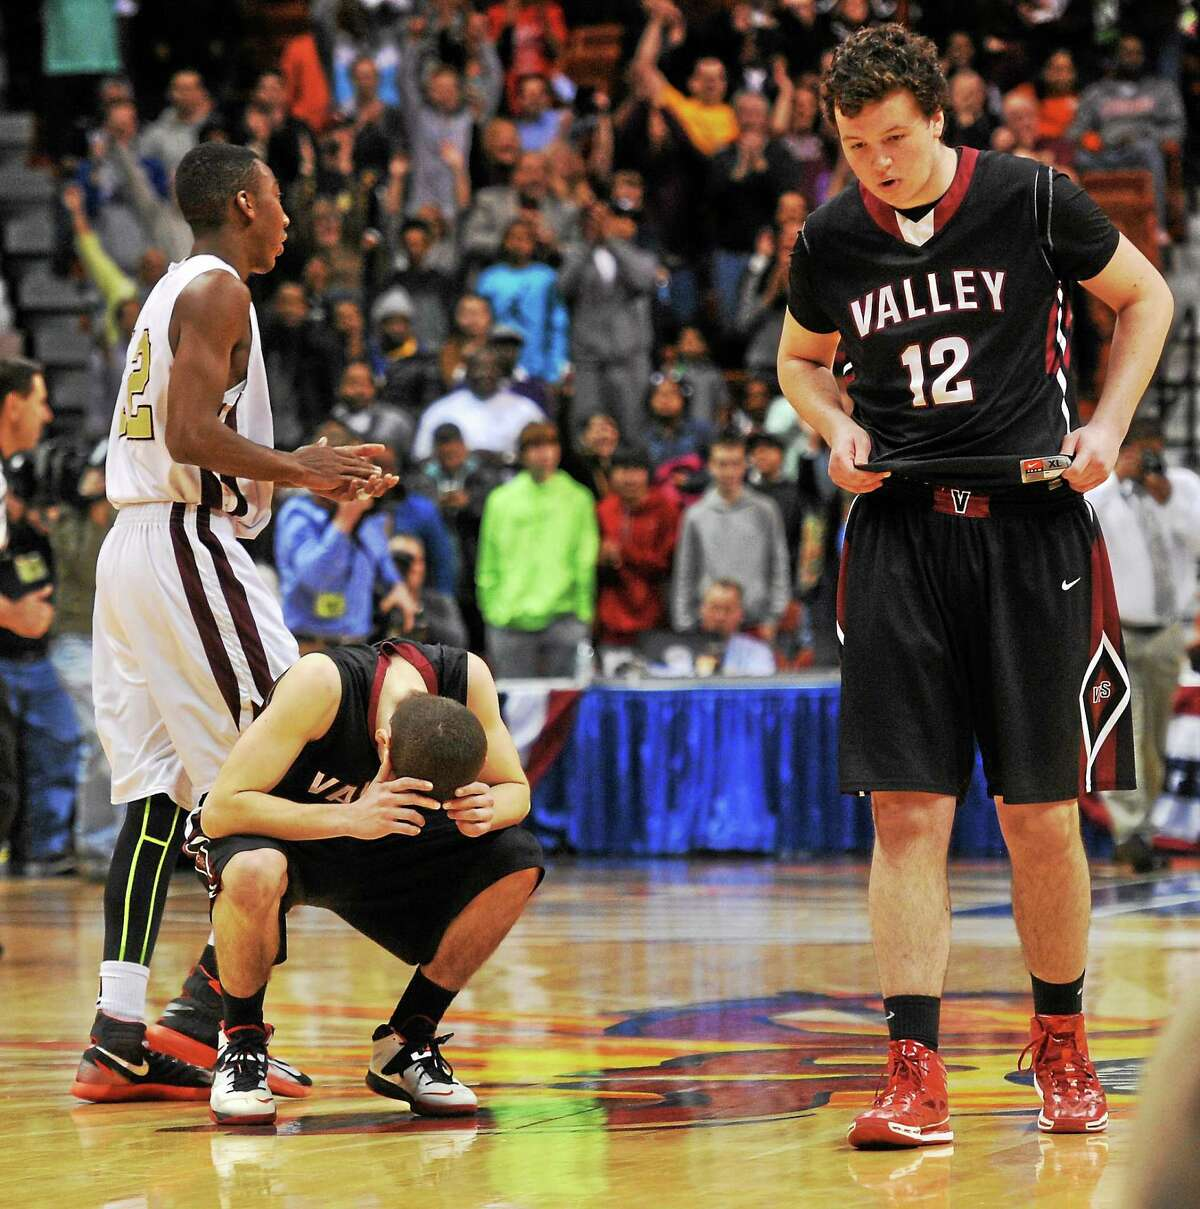 David Bradbury Jr., Brennan Joy (12) and Valley Regional battled Charles Fisher, left, and Sacred Heart to the end on Sunday, but came up short and lost 65-56 in the Class S state championship game.